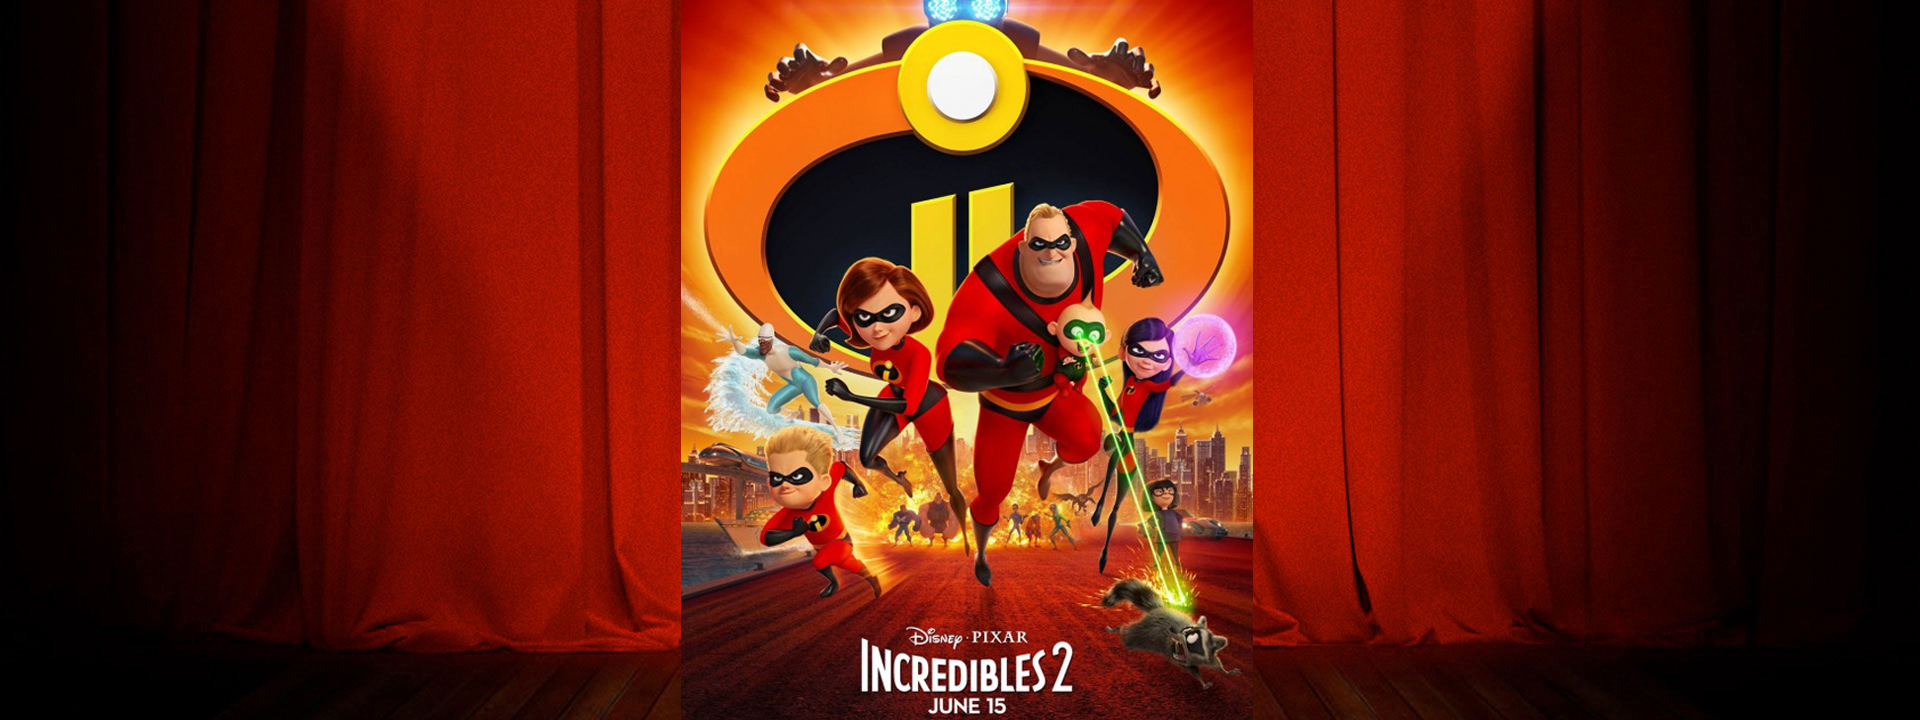 Incredibles 2 - Now Playing